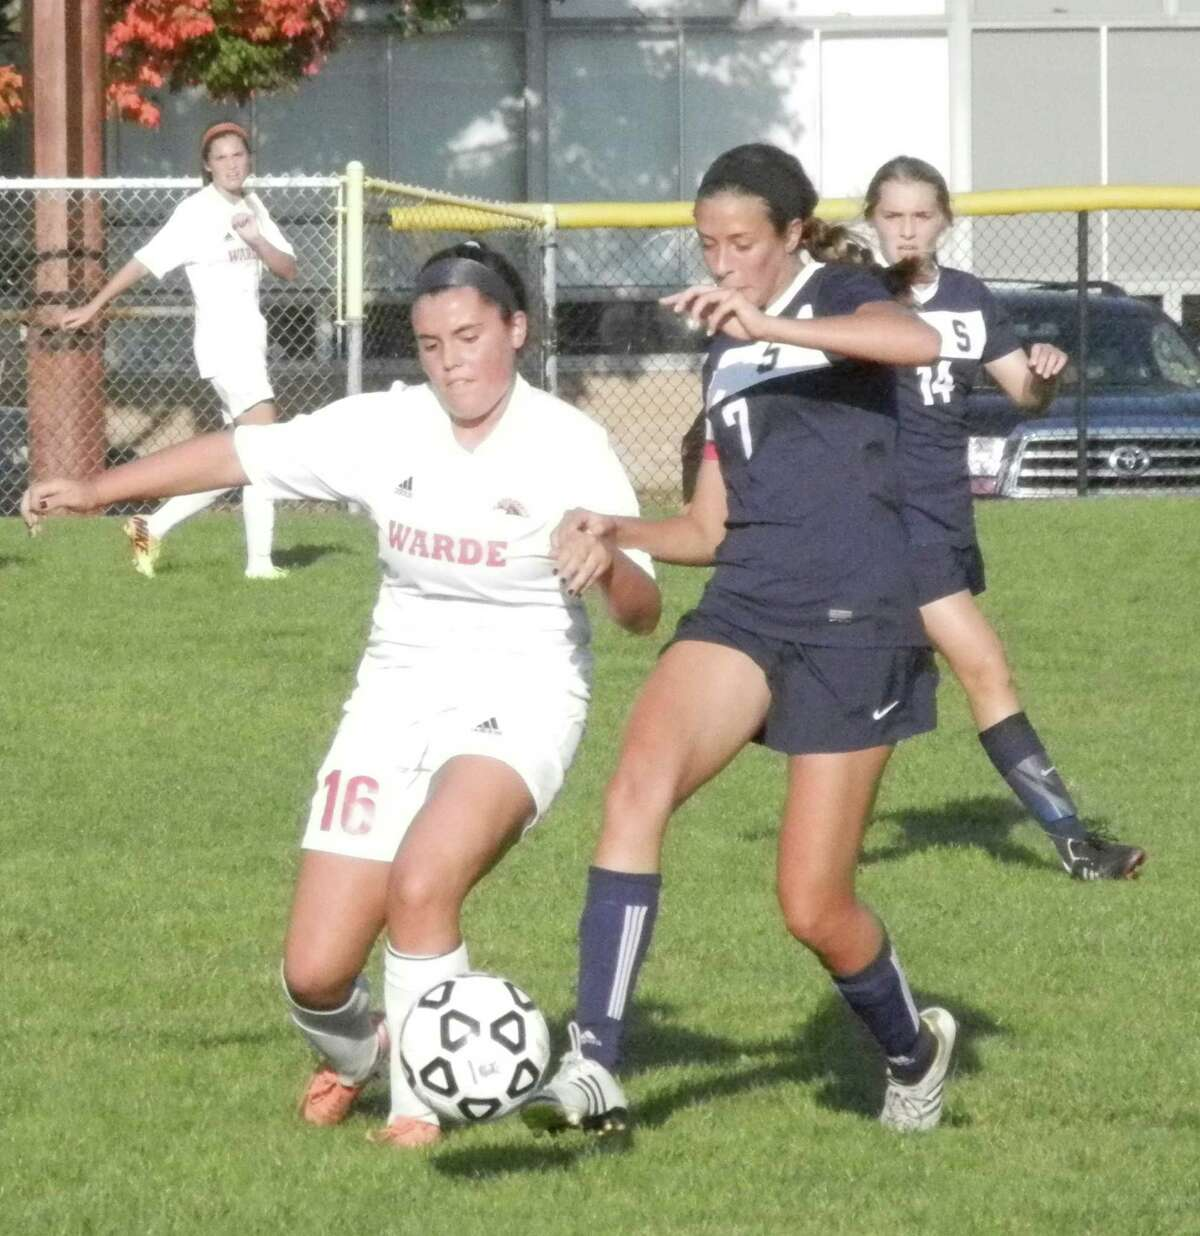 Fairfield Warde's Jenny Pullen (16) tangles with Staples Meghan Lonergan (7) in the Mustangs' 1-0 FCIAC girls soccer victory on Wednesday, Oct. 1 in Fairfield.